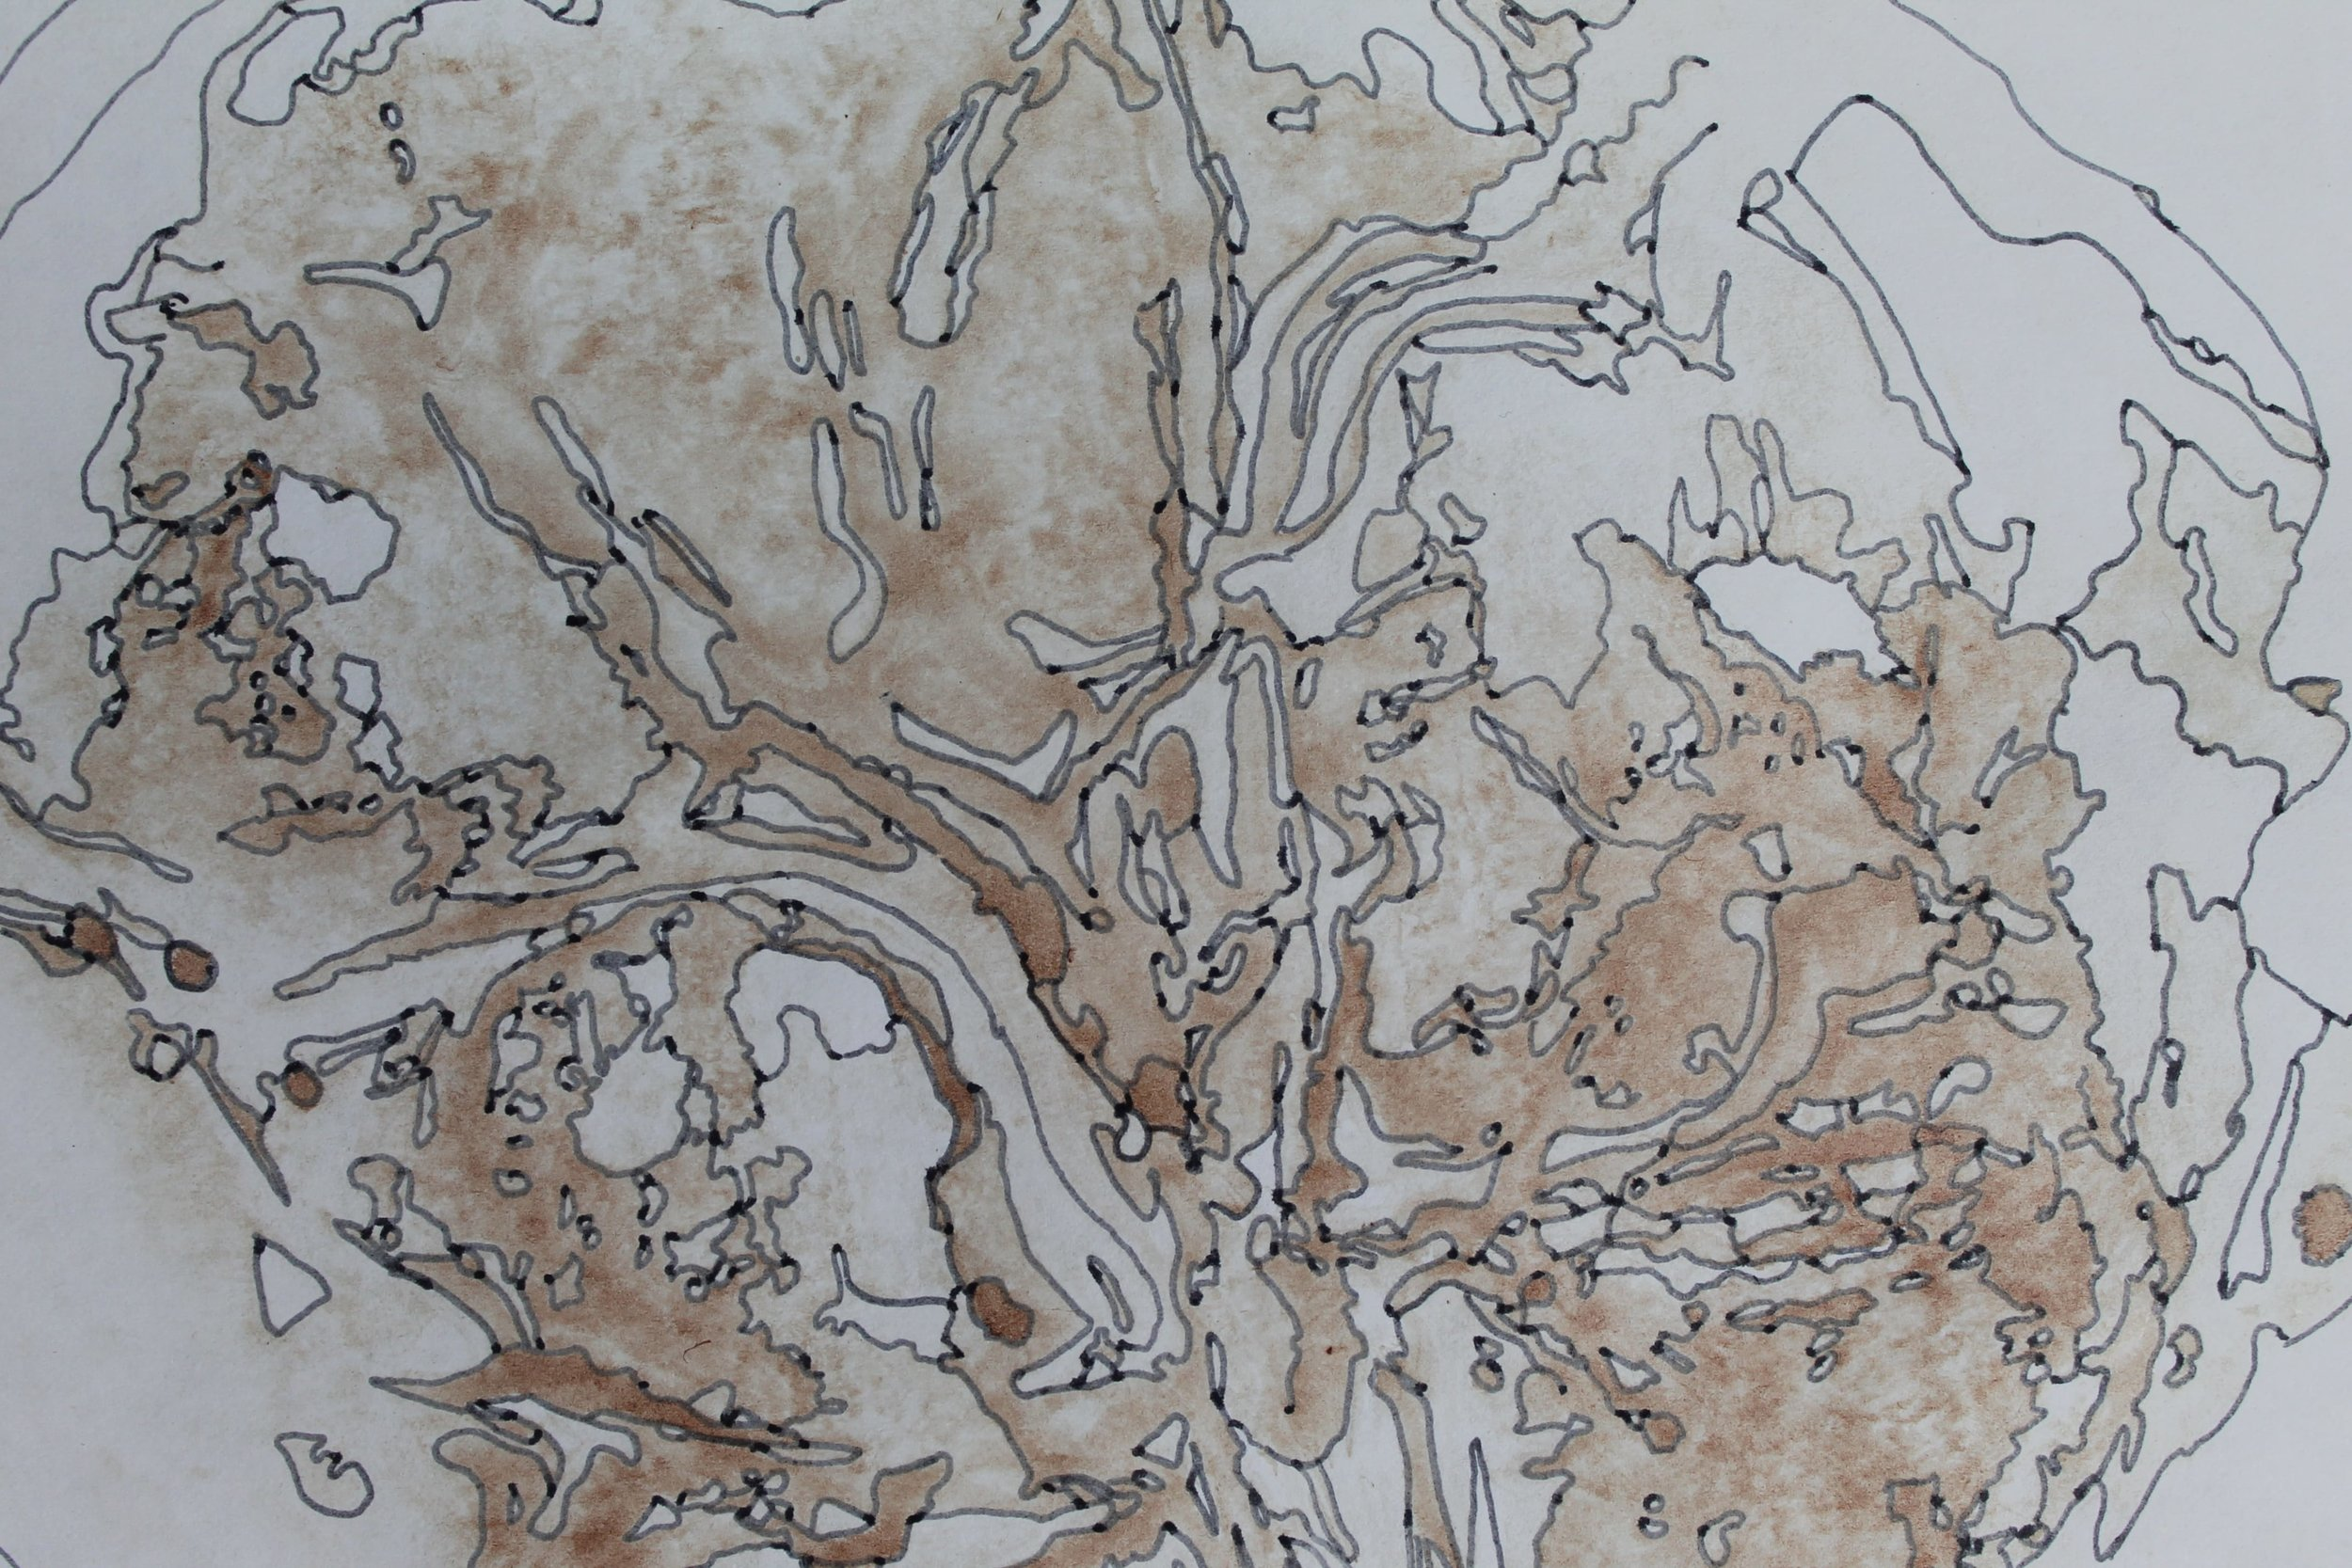 A section of a placenta print where a pen has been used to draw around the different shaded areas creating a beautiful, delicate image.